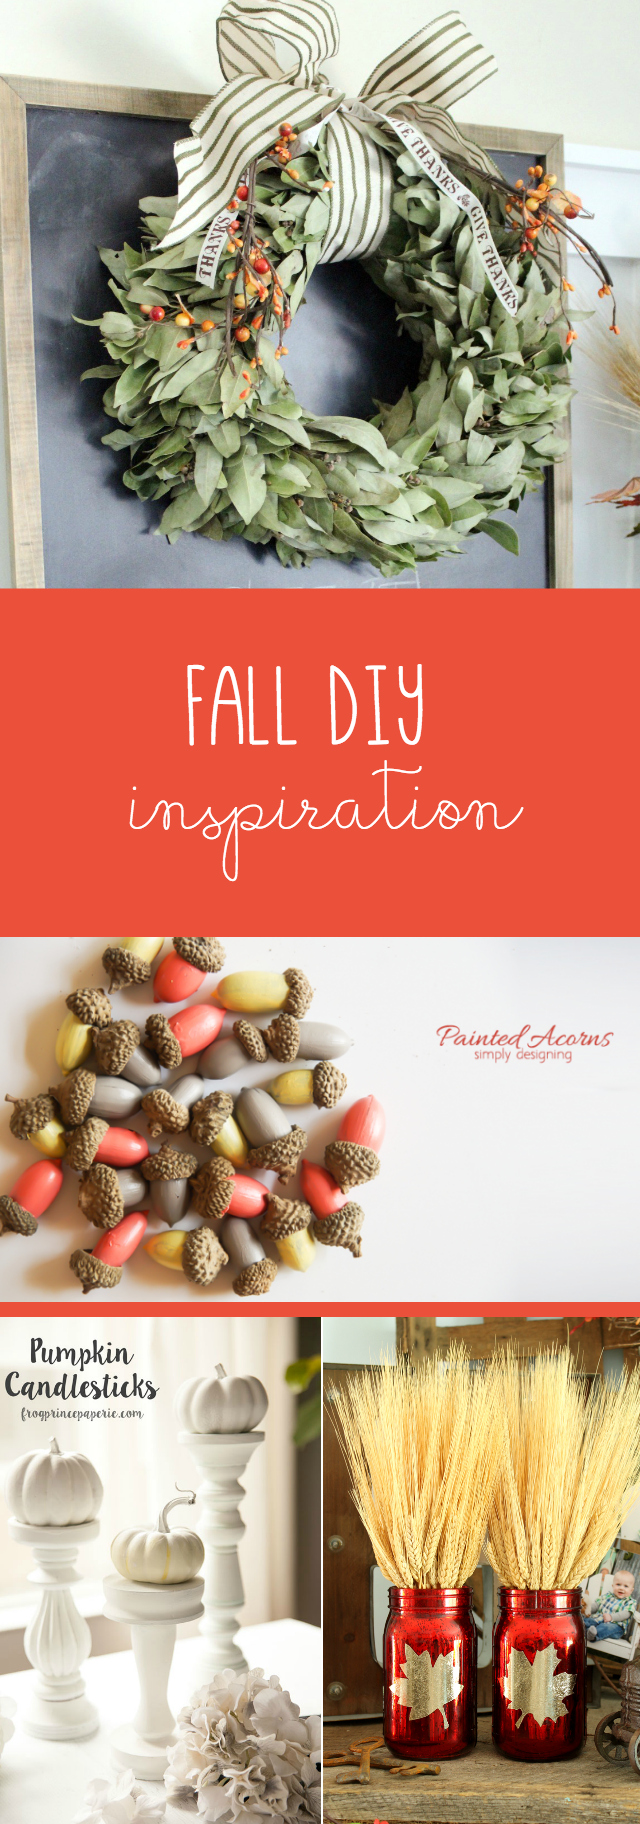 Fall DIY Inspiration to get your creative juices flowing! TablerPartyOfTwo.com